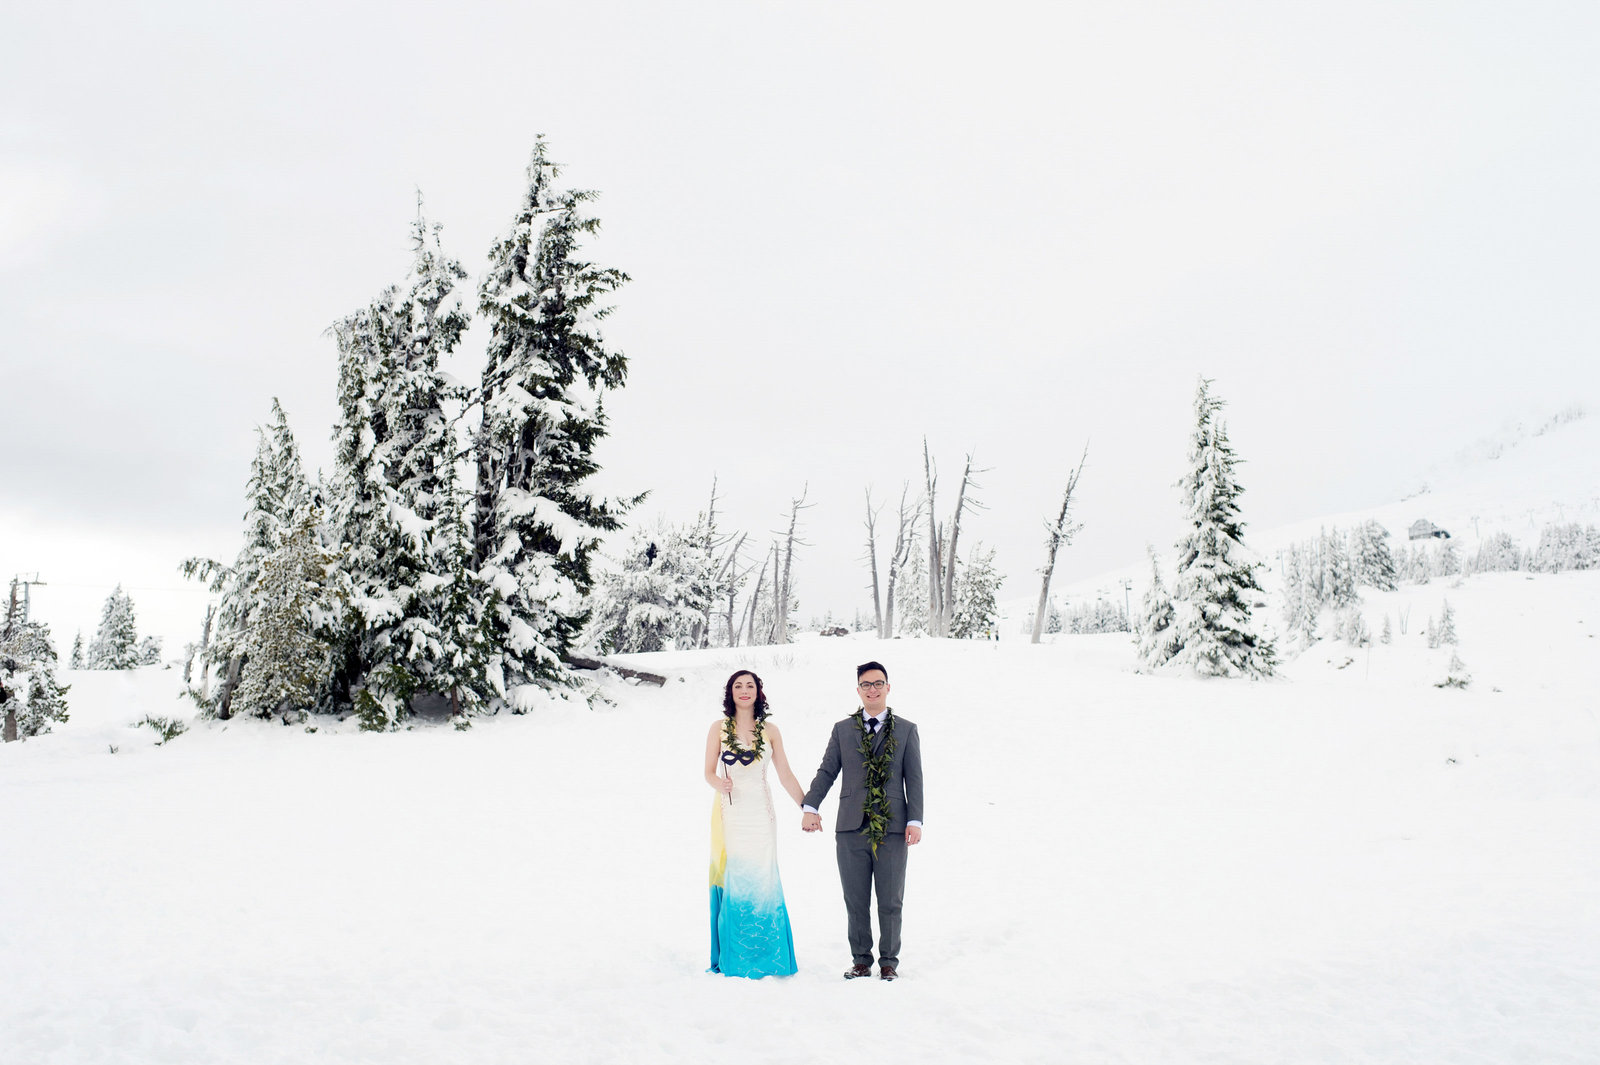 a snowy wedding at timberline lodge